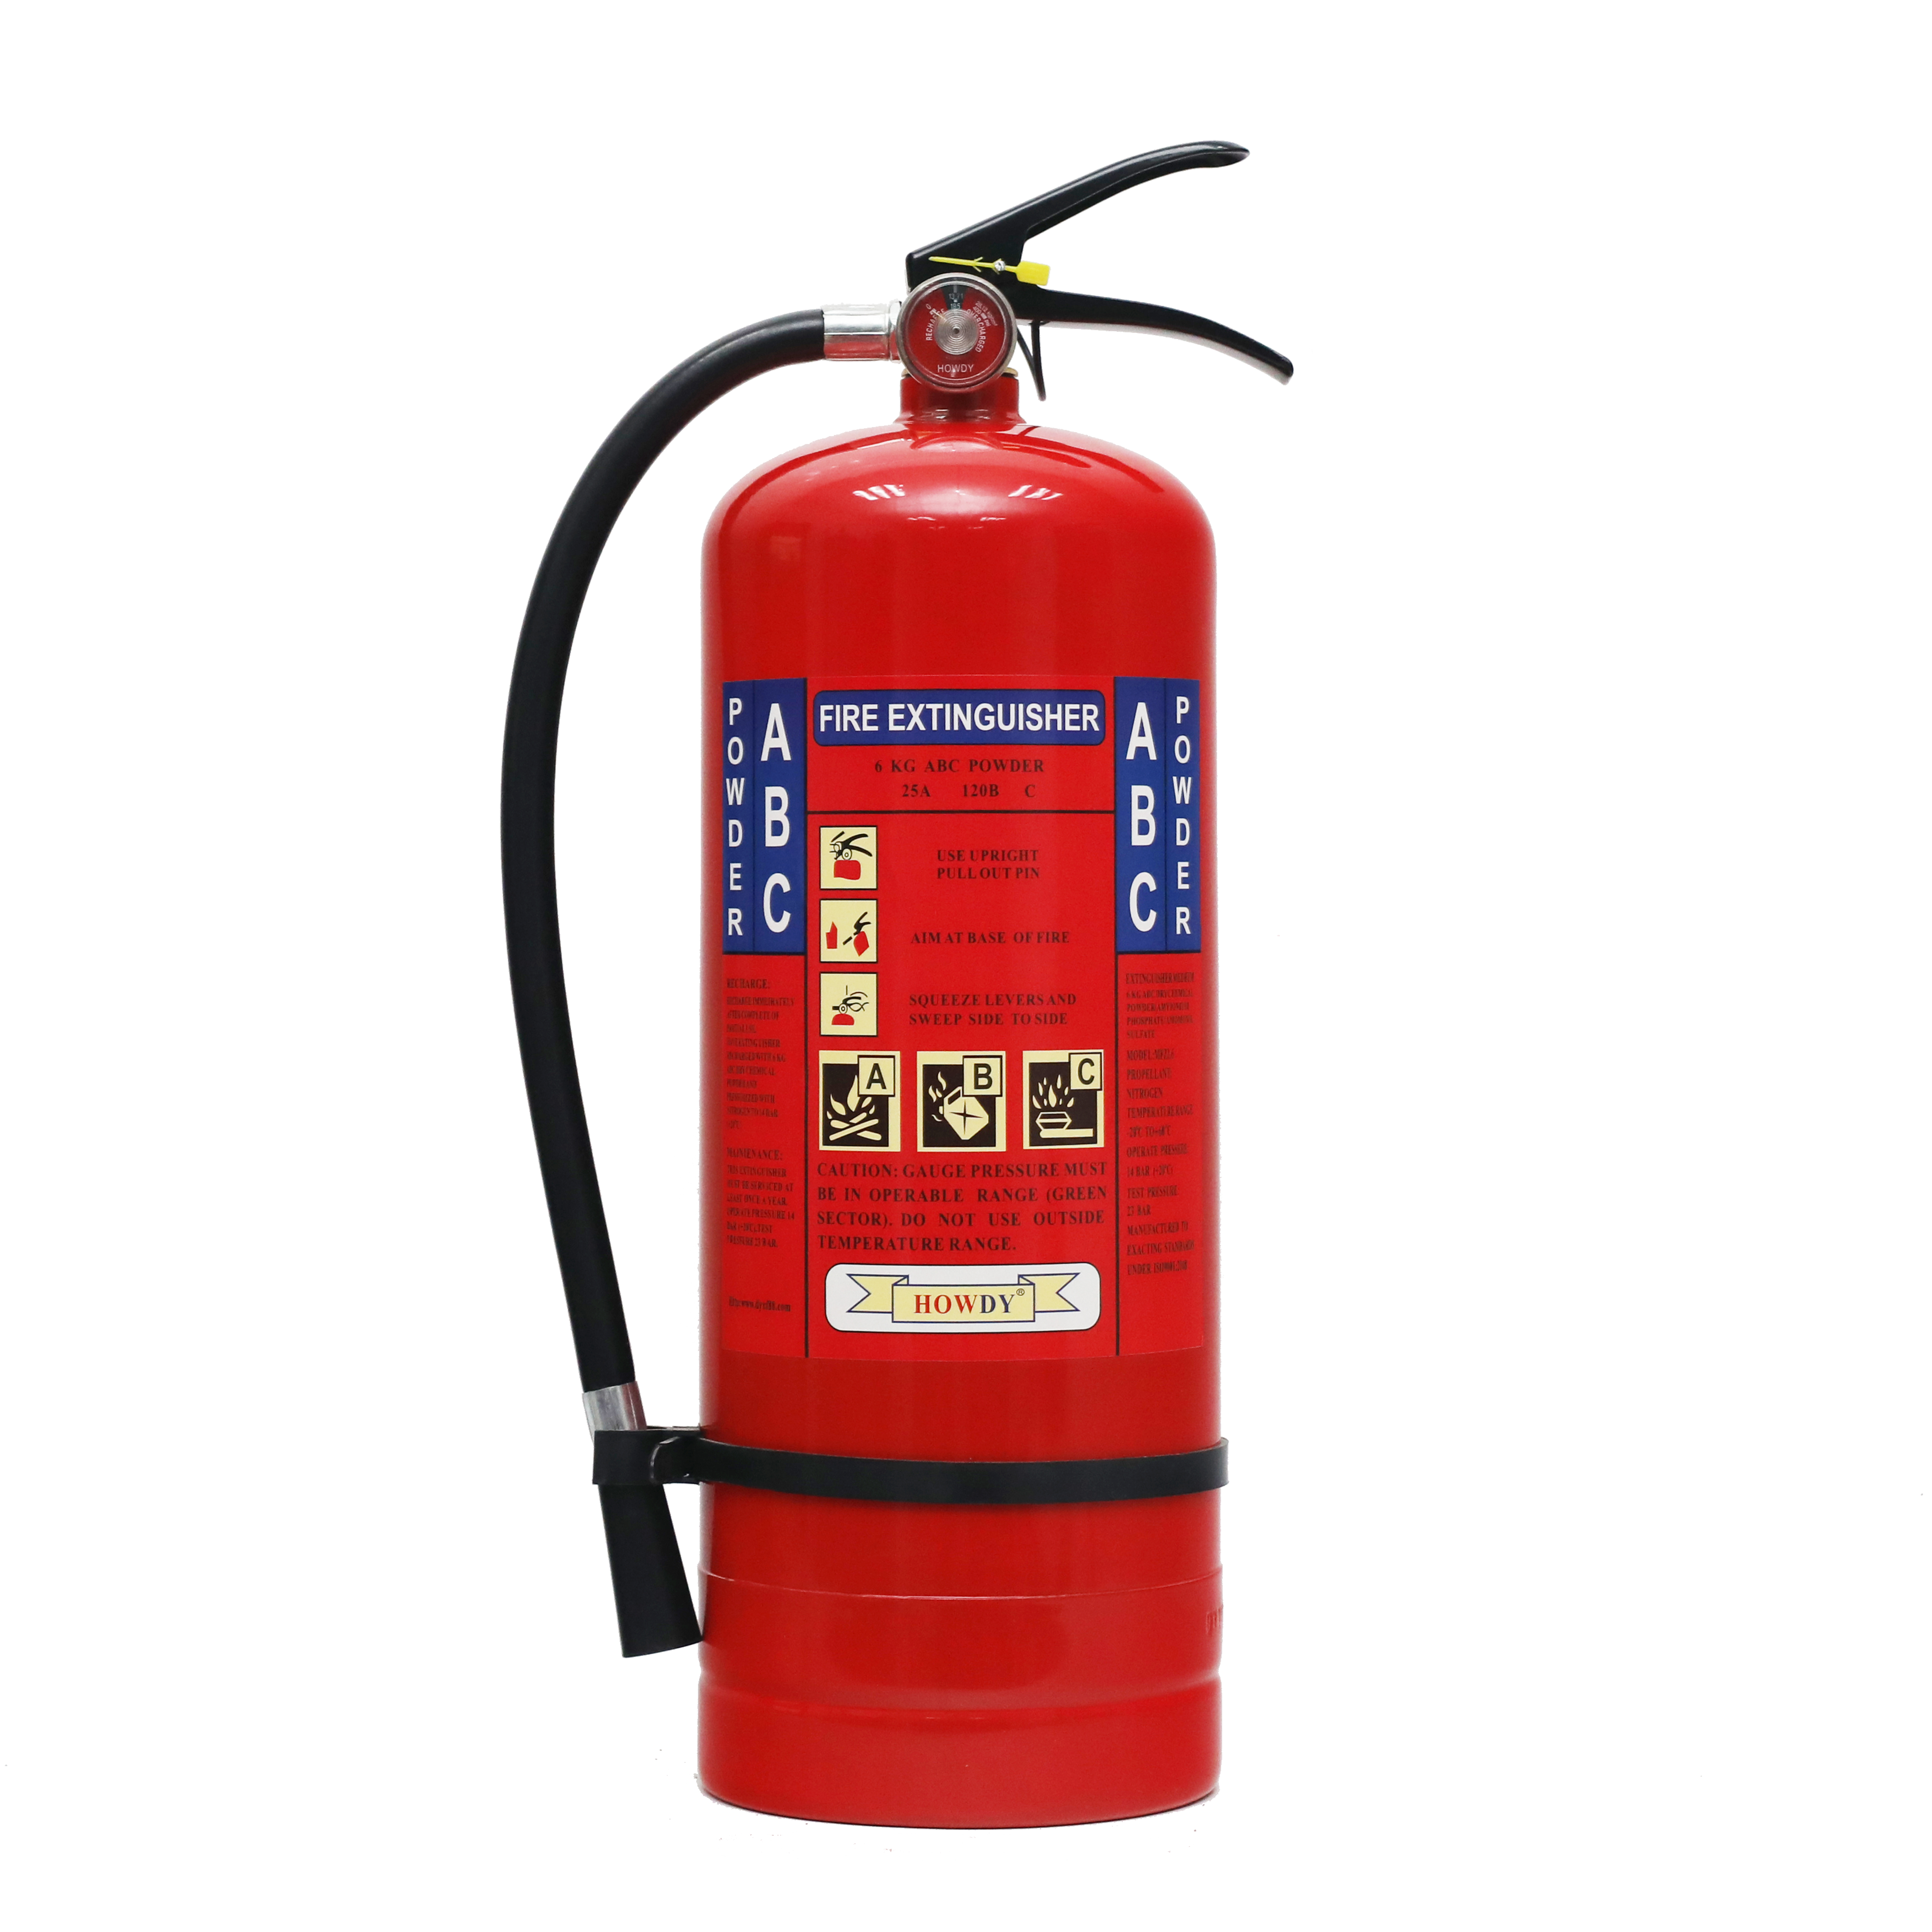 March Expo Newest design and cheap price of 6kg fire extinguisher,30% dry powder fire extinguisher,ABC fire extinguisher